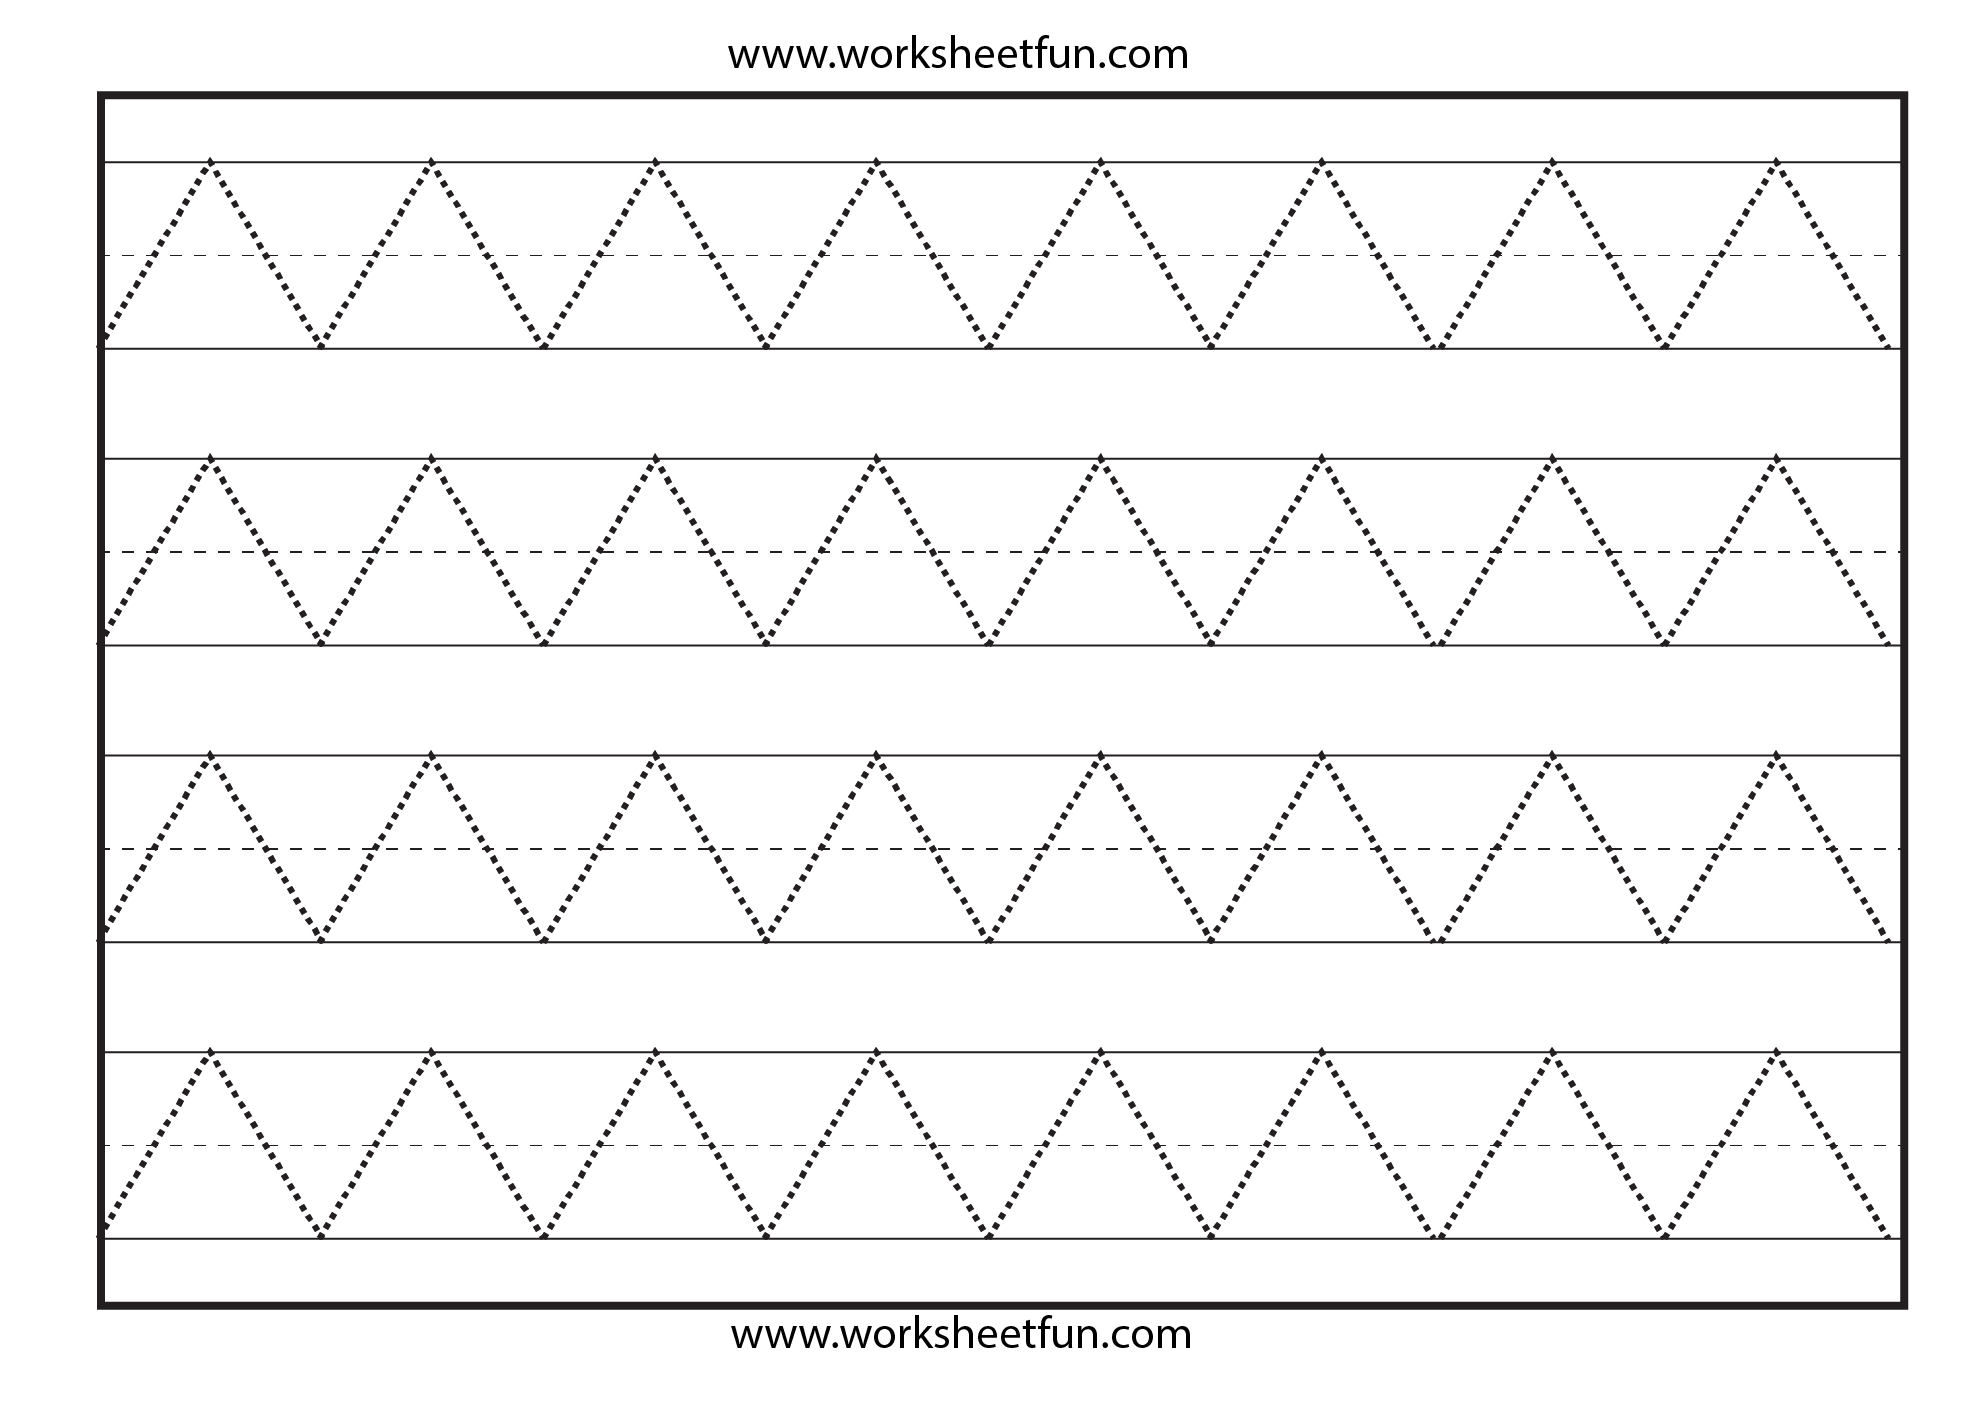 zig zag line tracing preschool worksheets pinterest zig zag worksheets and school. Black Bedroom Furniture Sets. Home Design Ideas